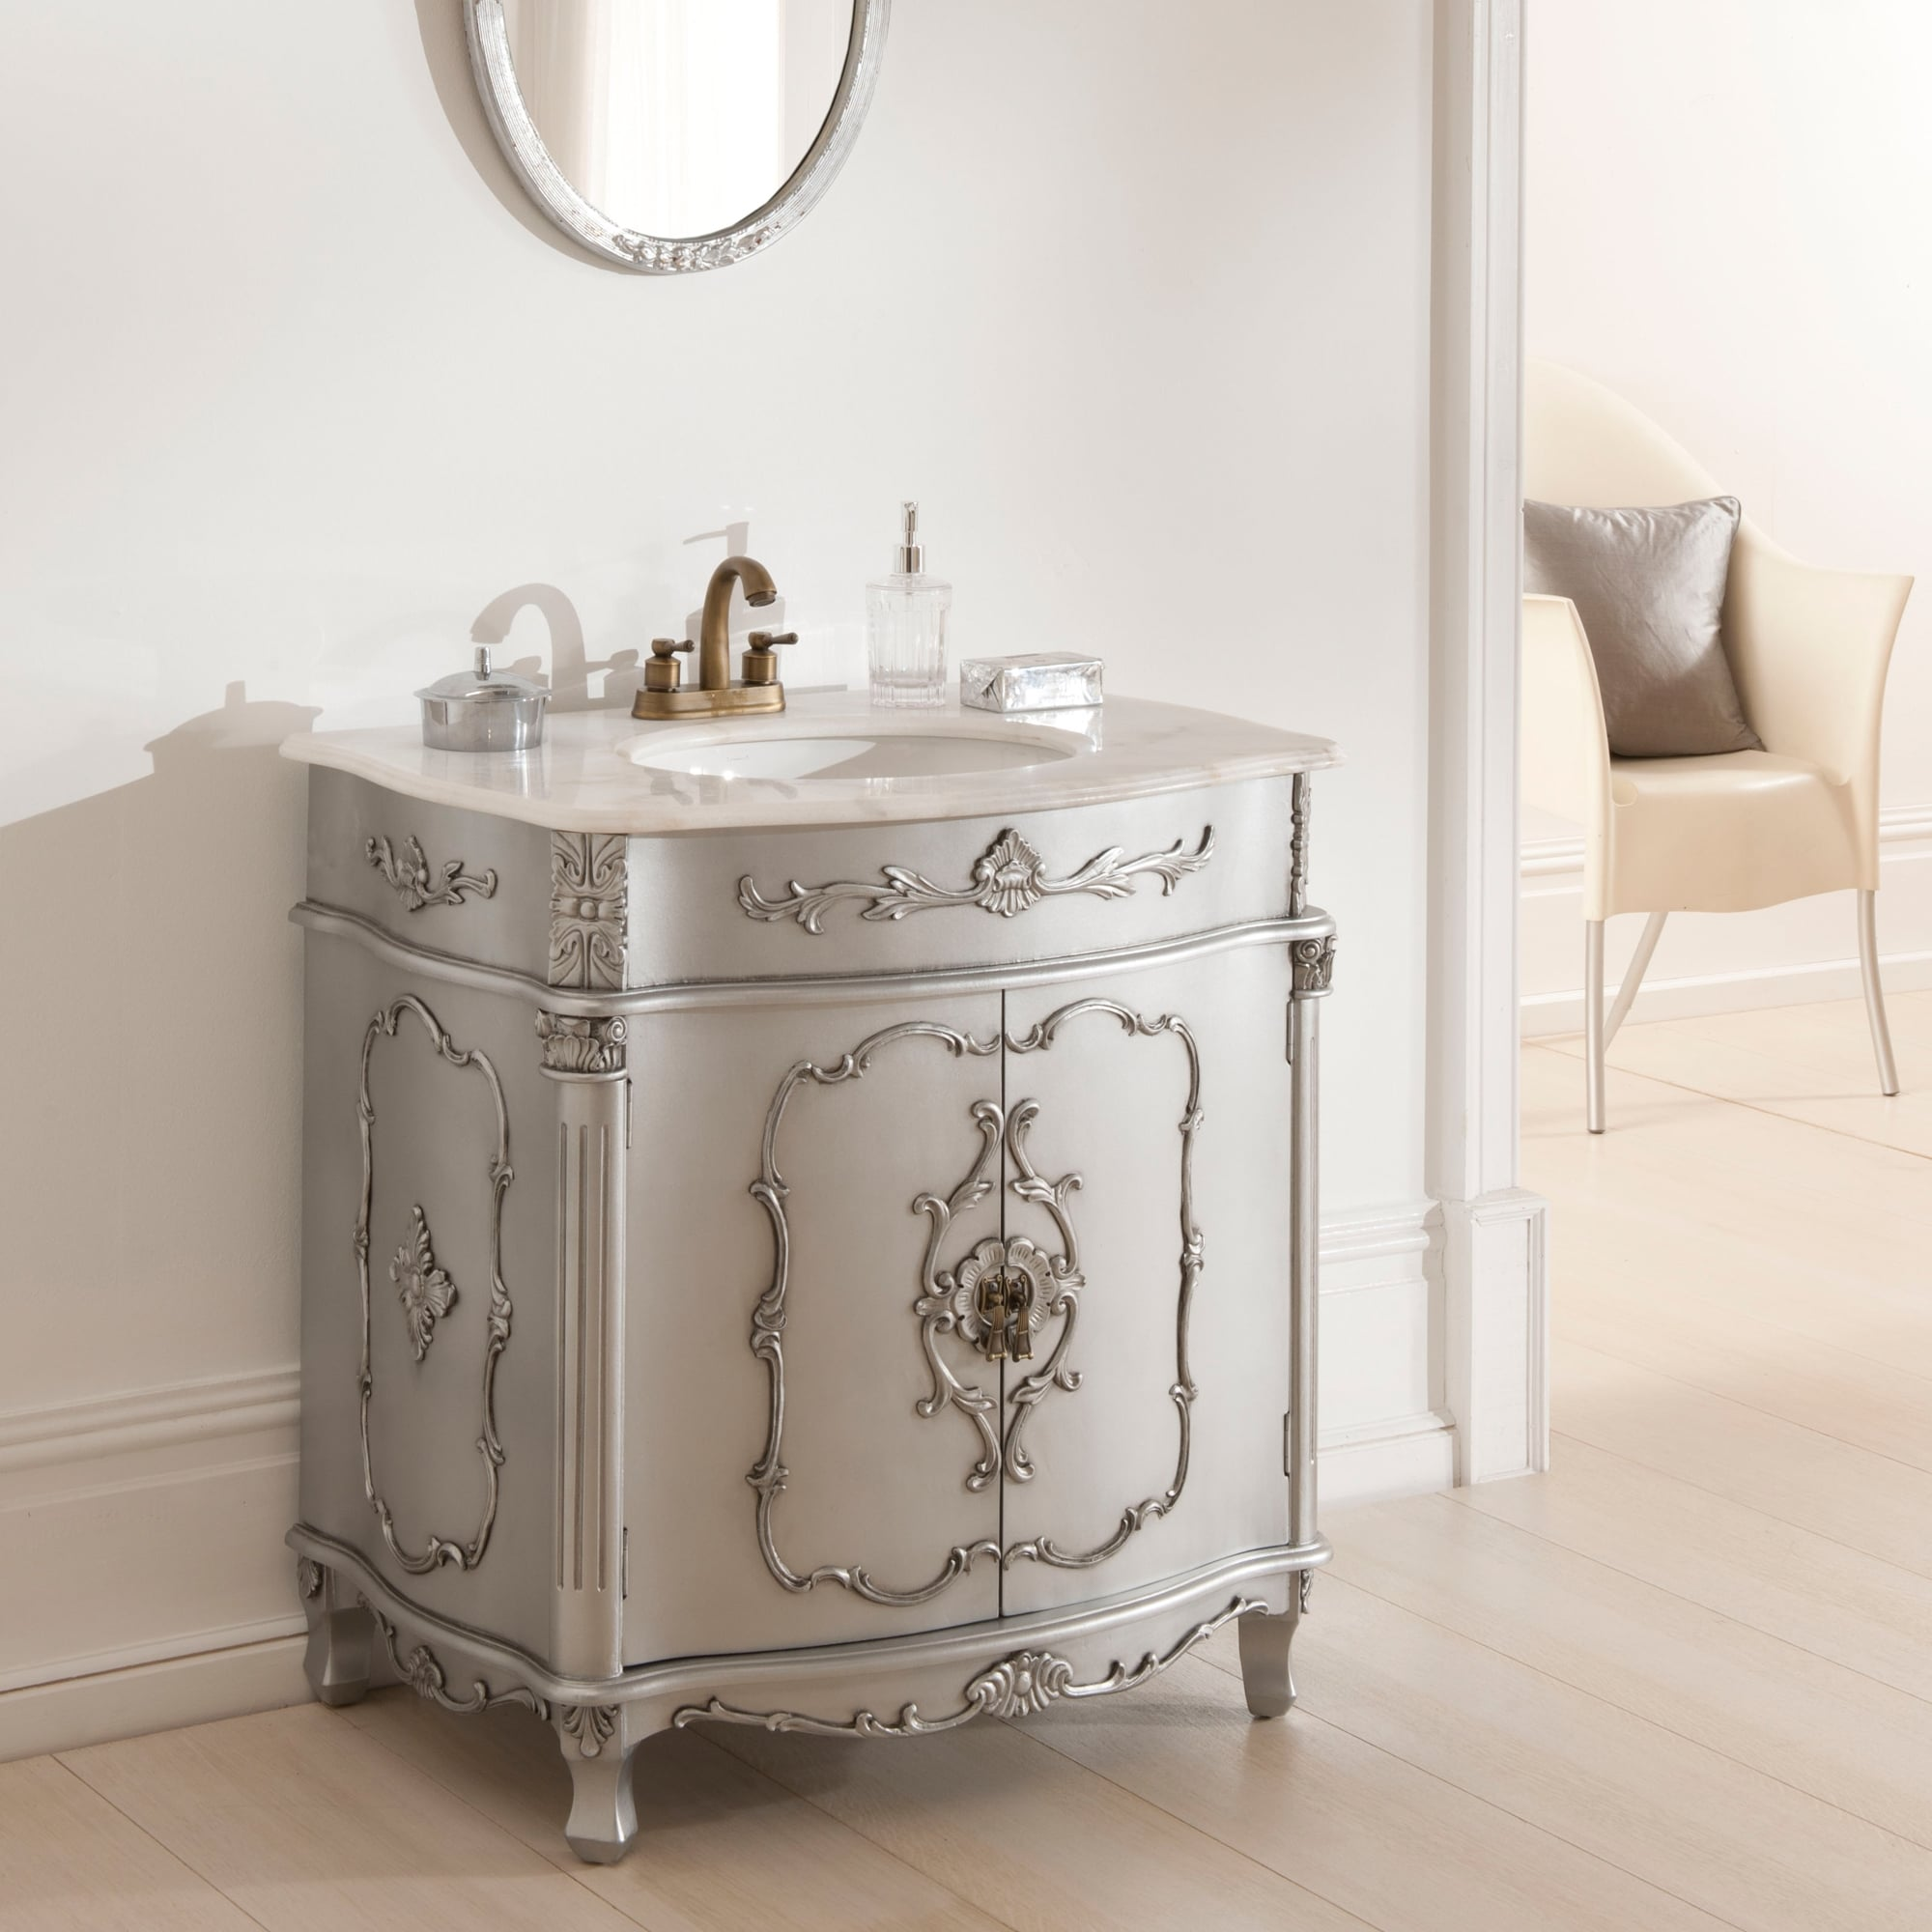 Antique french vanity unit is a wonderful addition to our - Furniture looking bathroom vanities ...